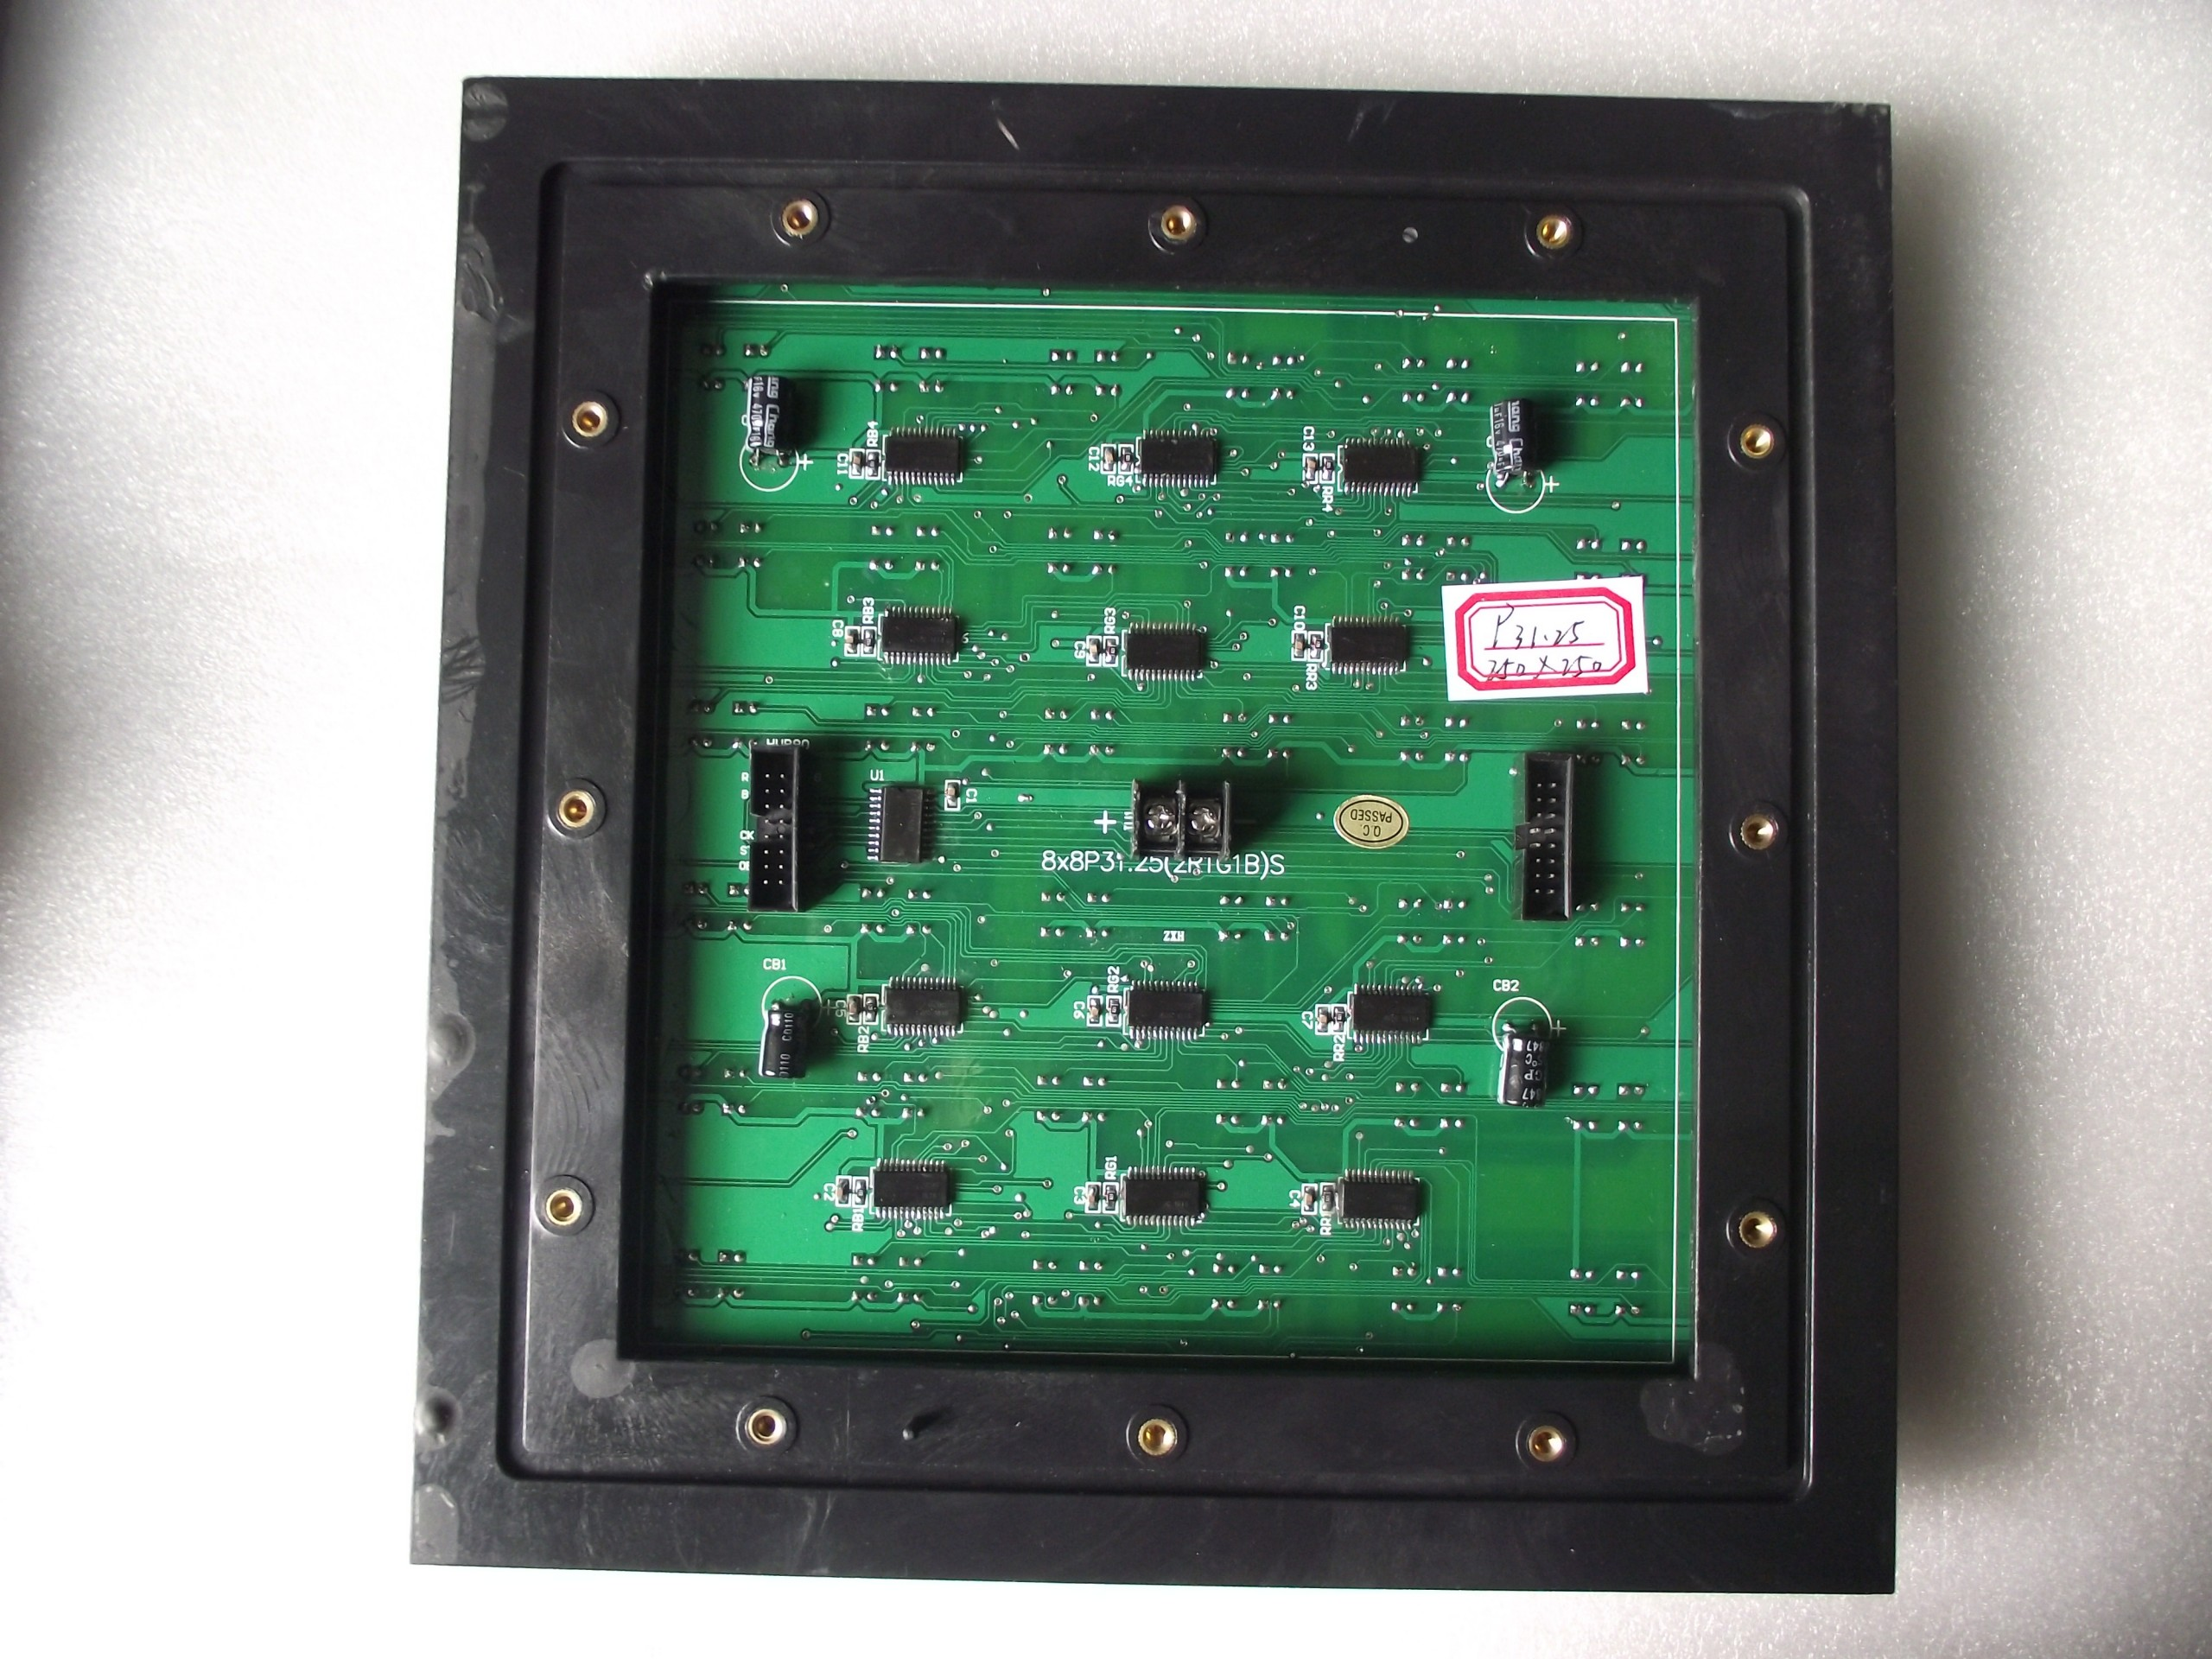 OUTDOOR p31.25 led display module